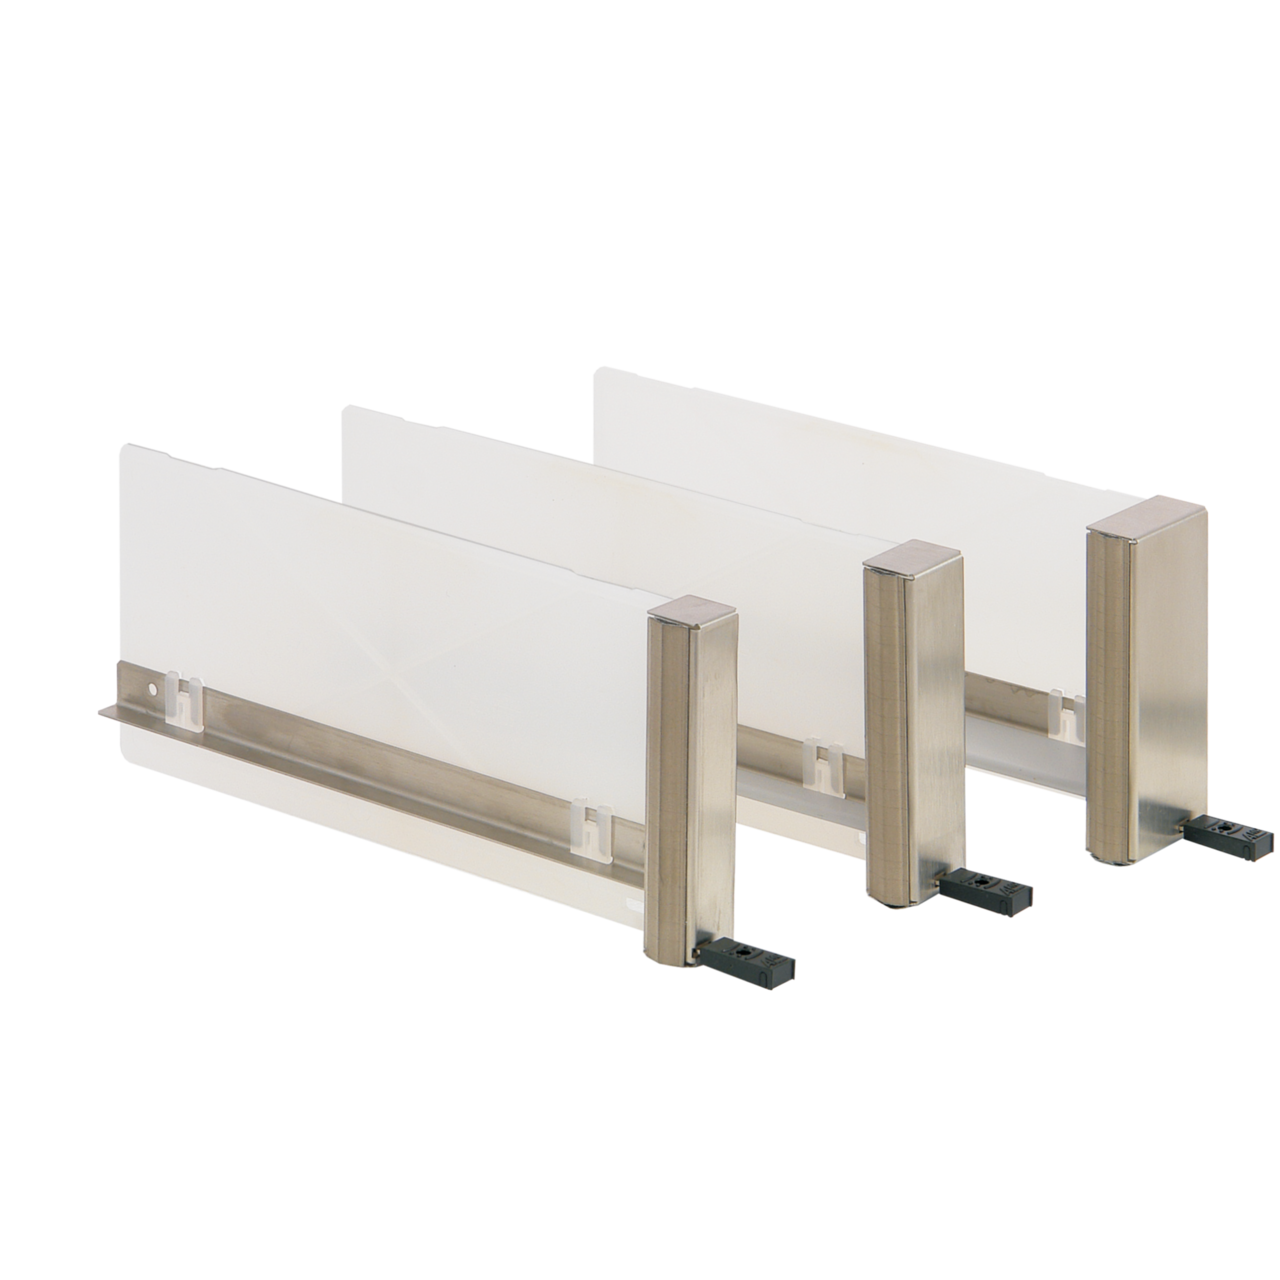 Image for ECO filler module with fixed handle from Schroff - Asia Pacific